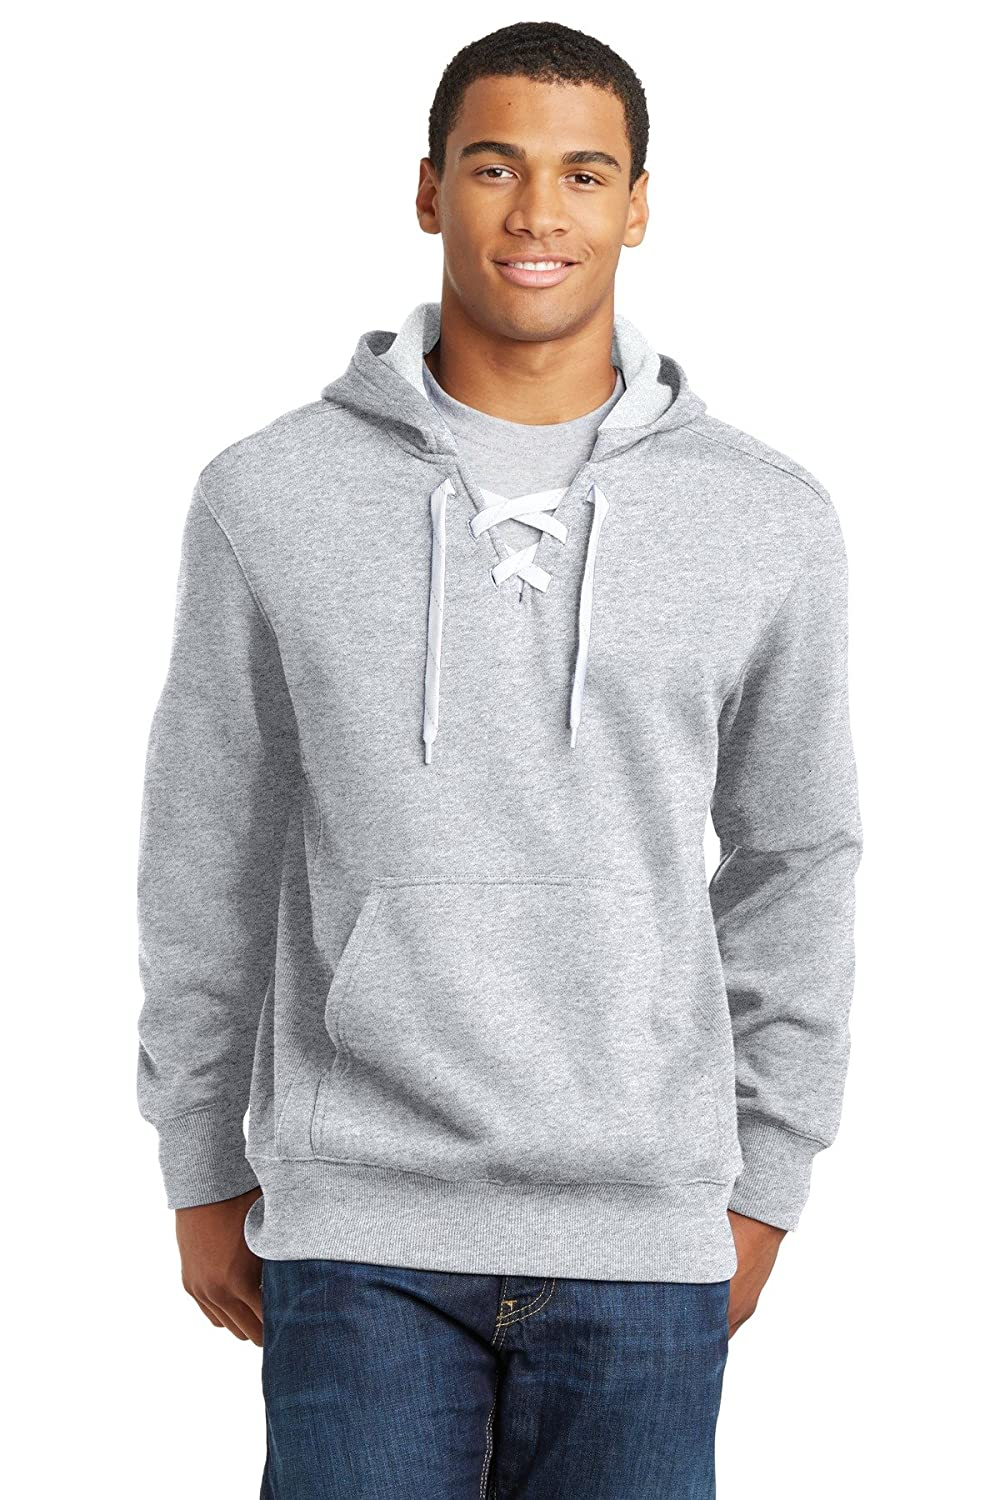 Mens Lace Up Pullover Hooded Sweatshirts in Sizes XS-4XL